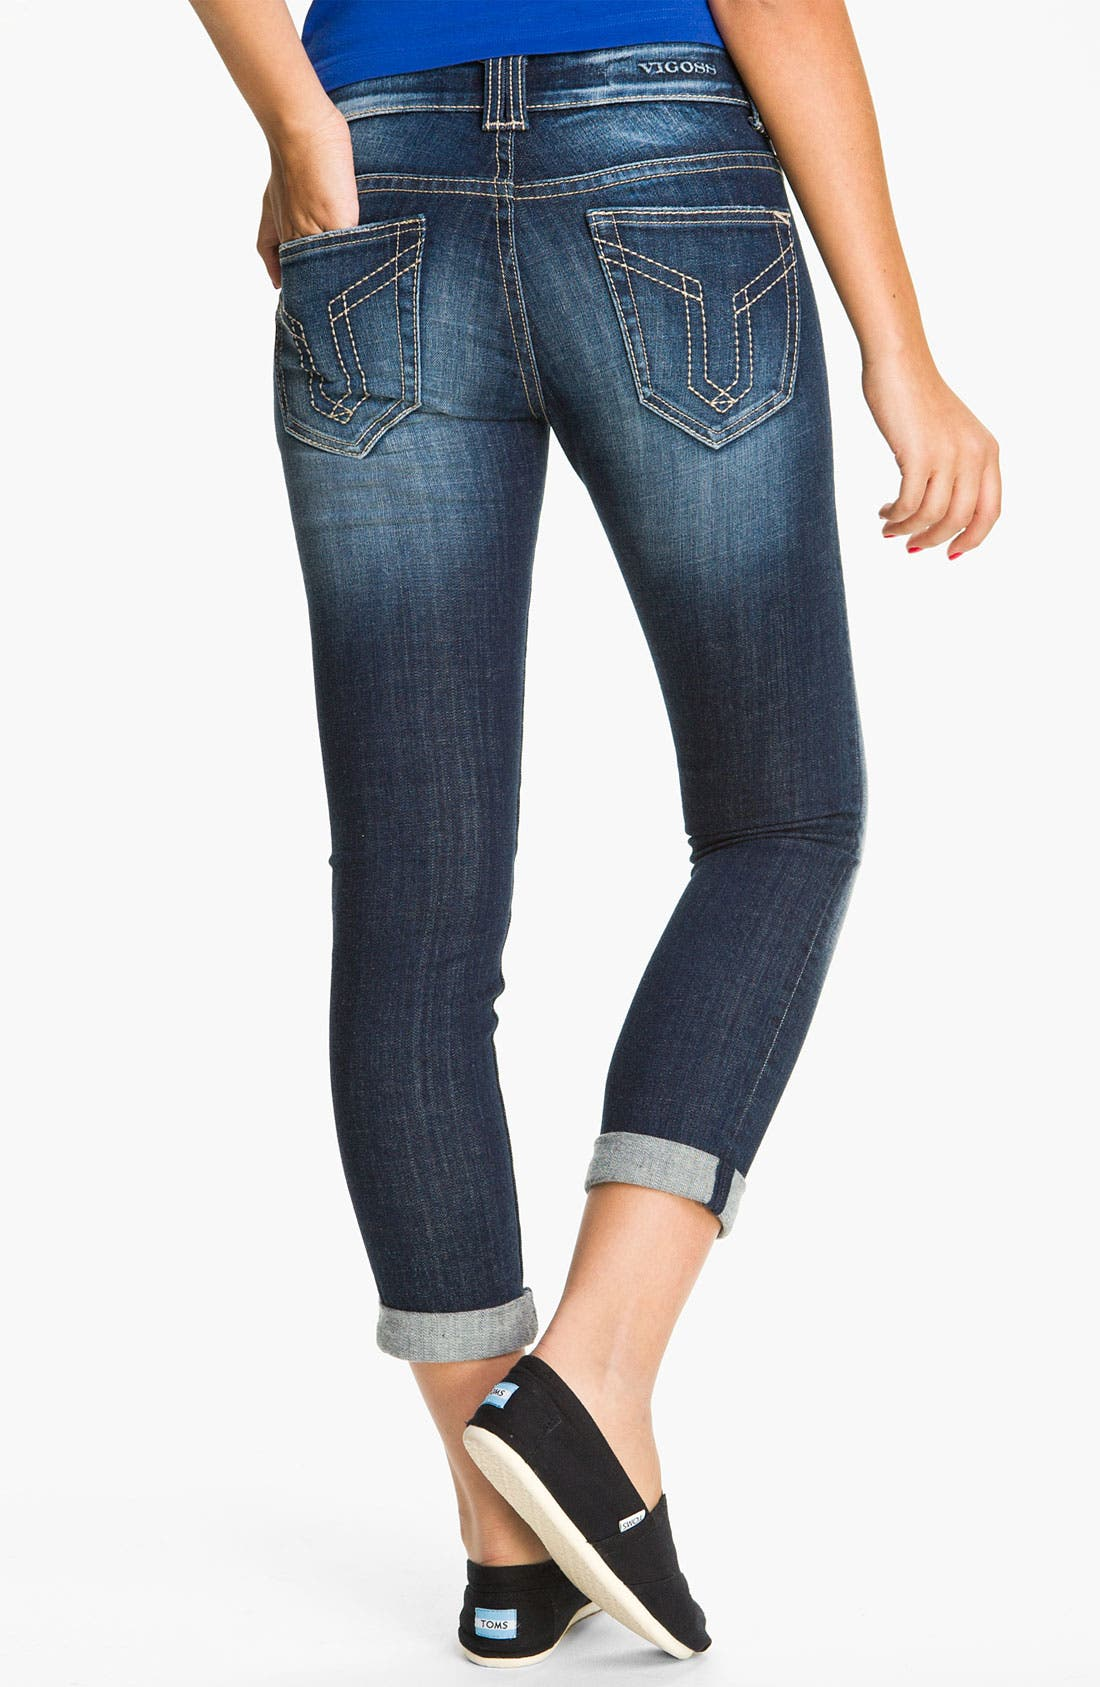 Alternate Image 1 Selected - Vigoss 'Thompson' Stretch Jeans (Dark) (Juniors)